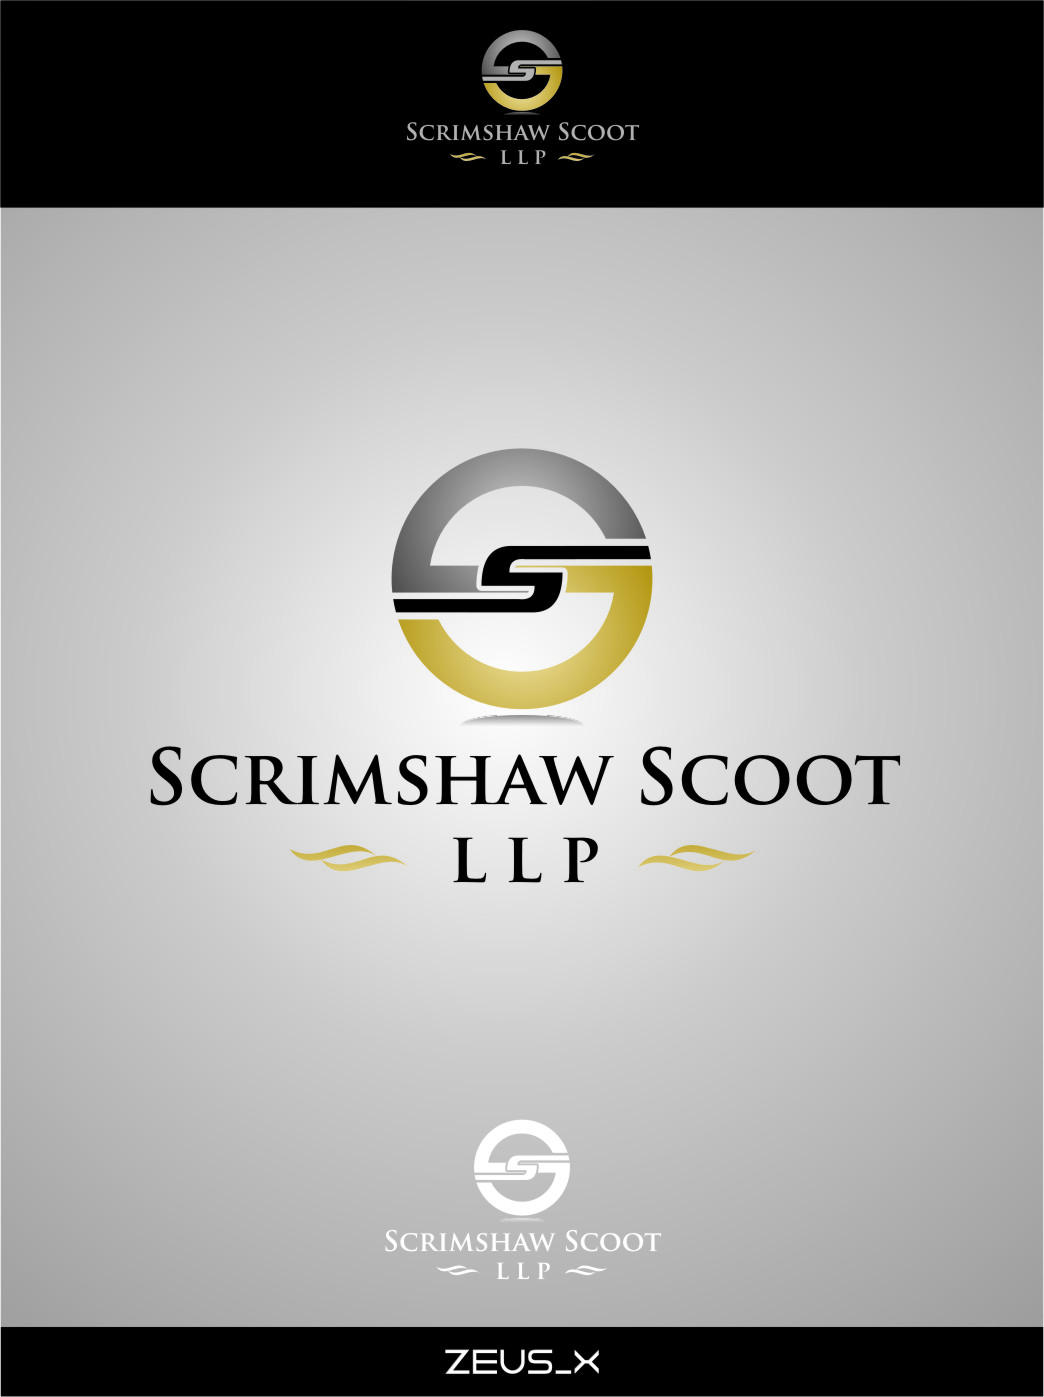 Logo Design by Ngepet_art - Entry No. 85 in the Logo Design Contest Creative Logo Design for Scrimshaw Scott LLP.